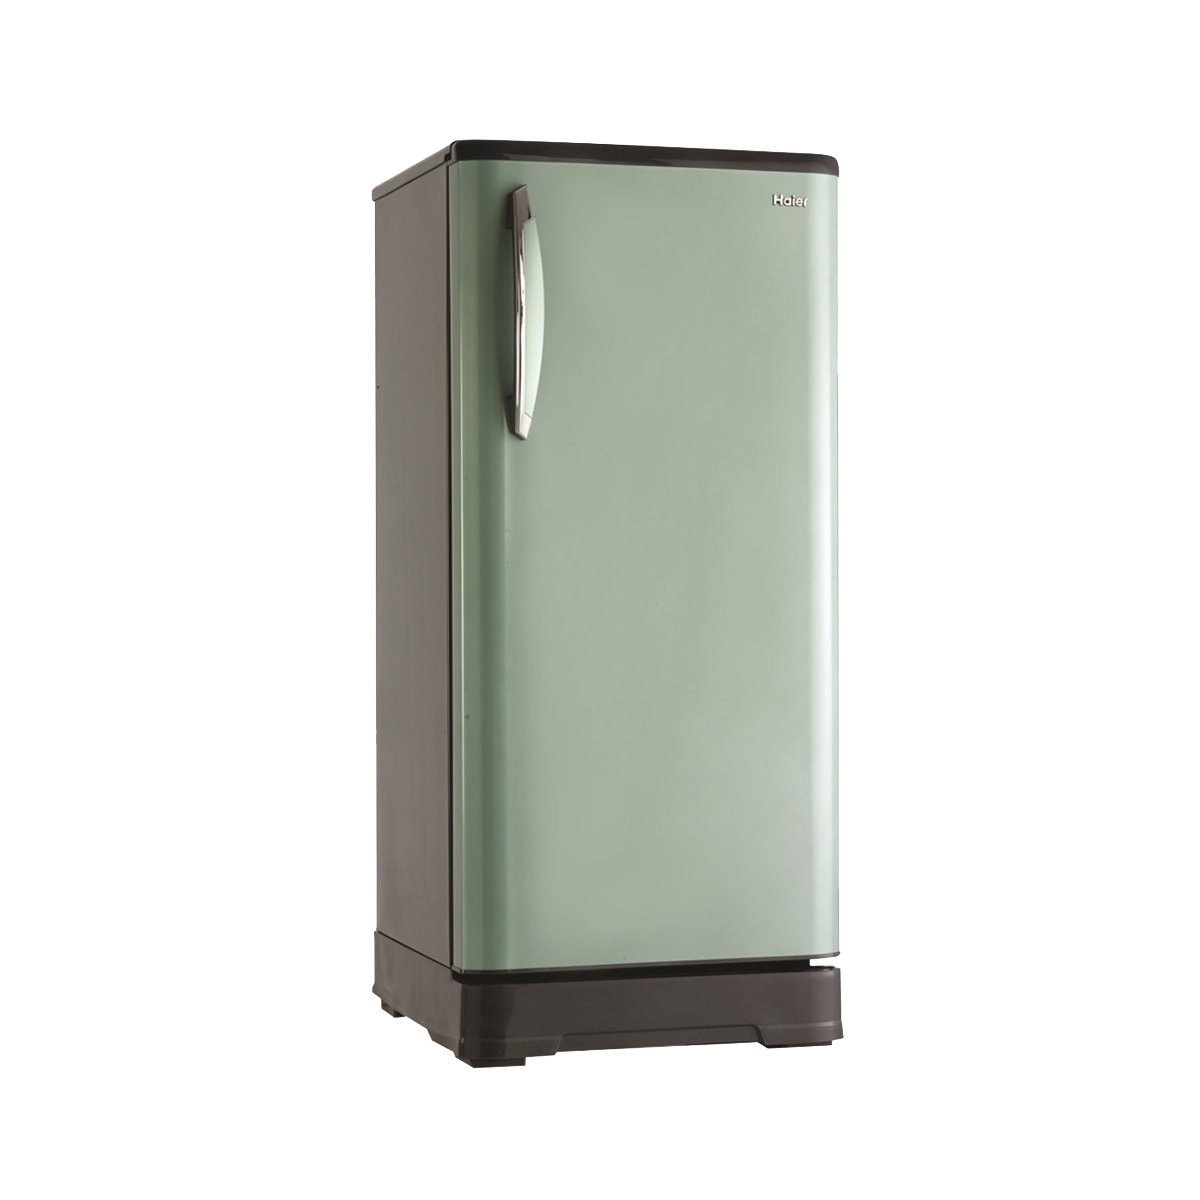 Single Door Refrigerator PNG Photos - Refrigerator PNG